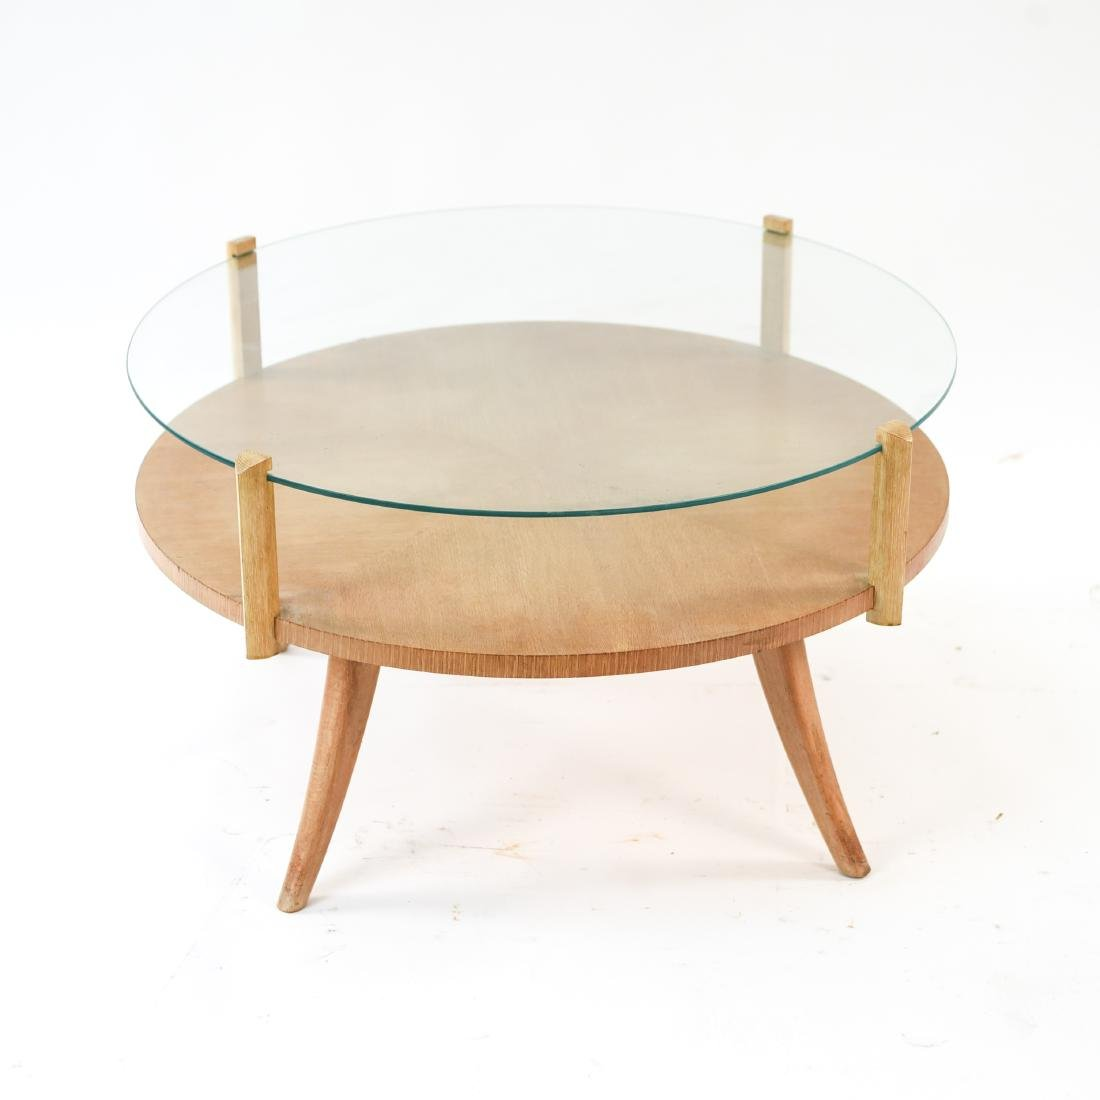 MID-CENTURY PICKLED OAK COFFEE TABLE